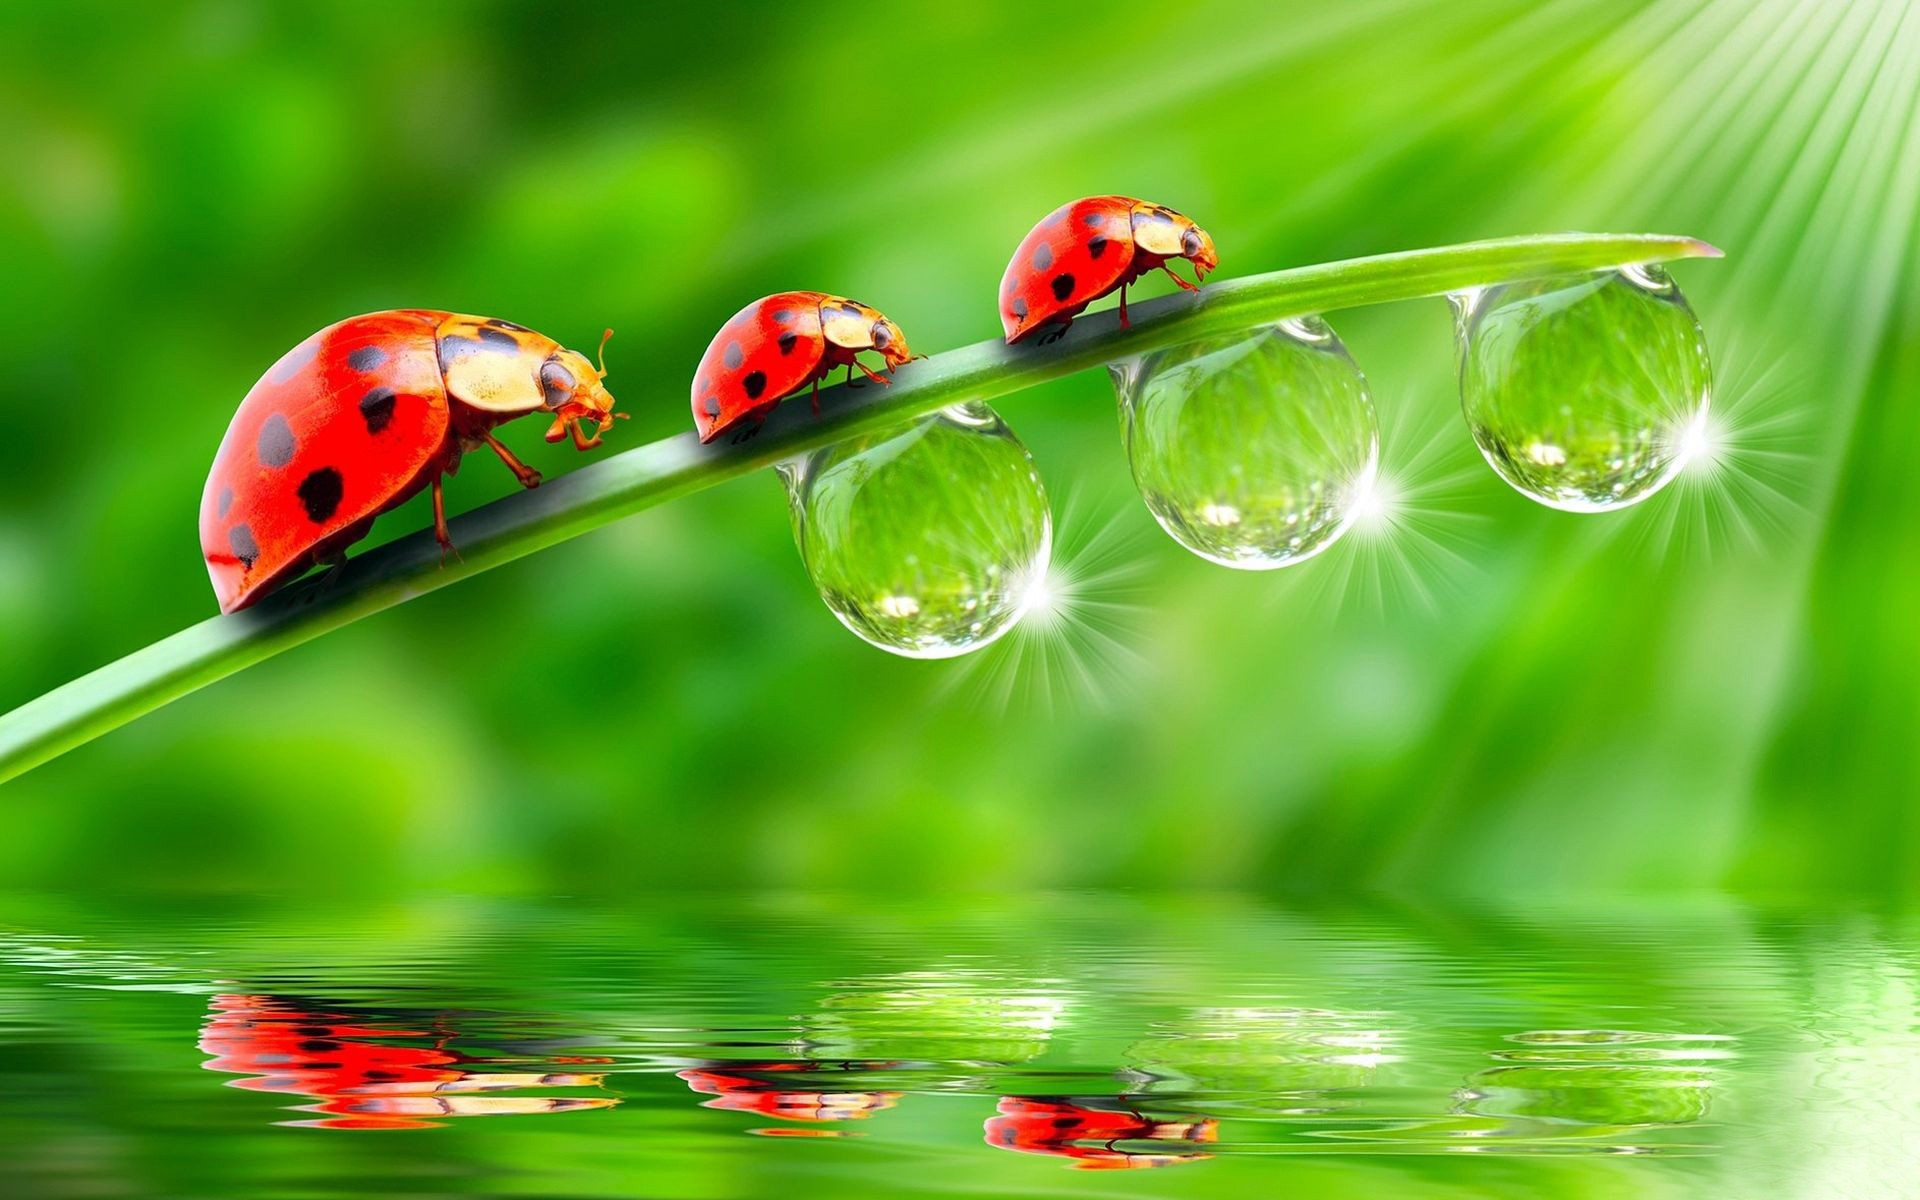 ladybird leaf water drop backgrounds pic wpd0011901